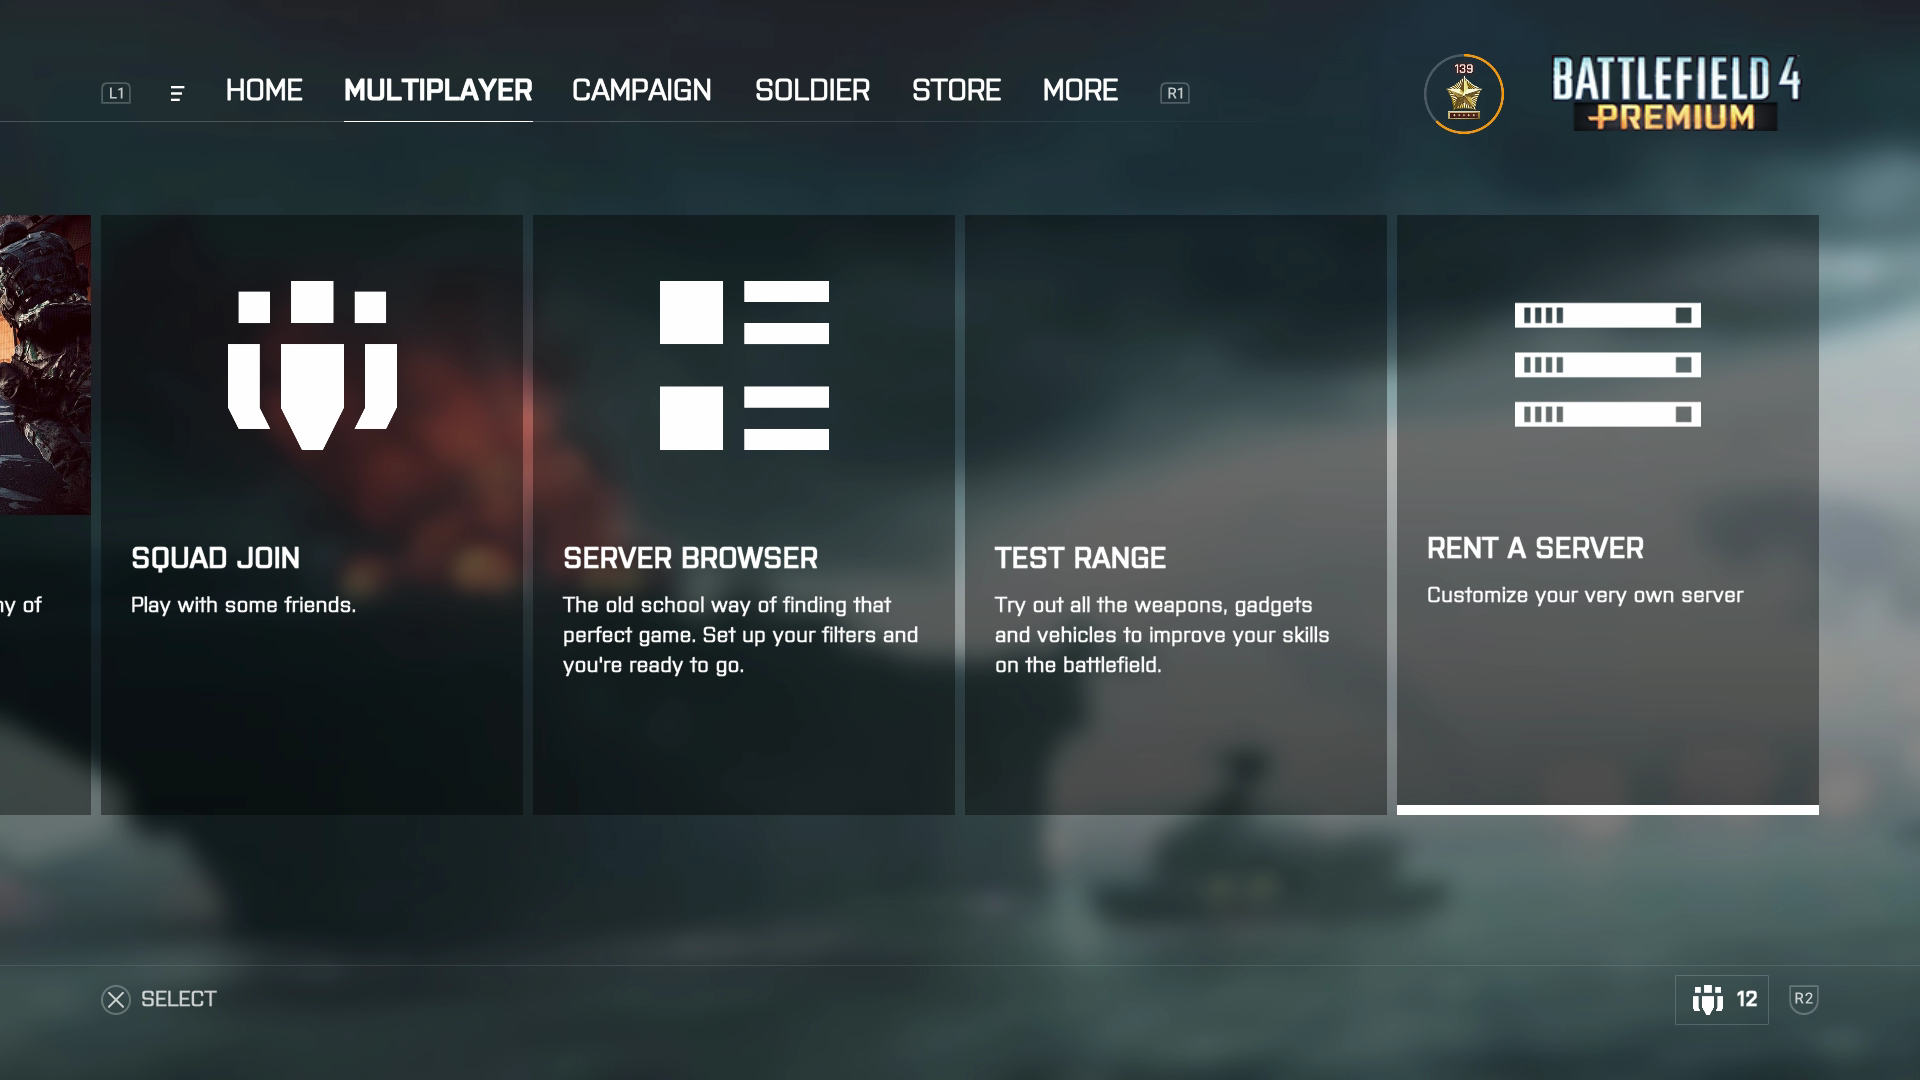 Battlefield 4 gets new, cleaner UI on PS4 and Xbox One - VG247